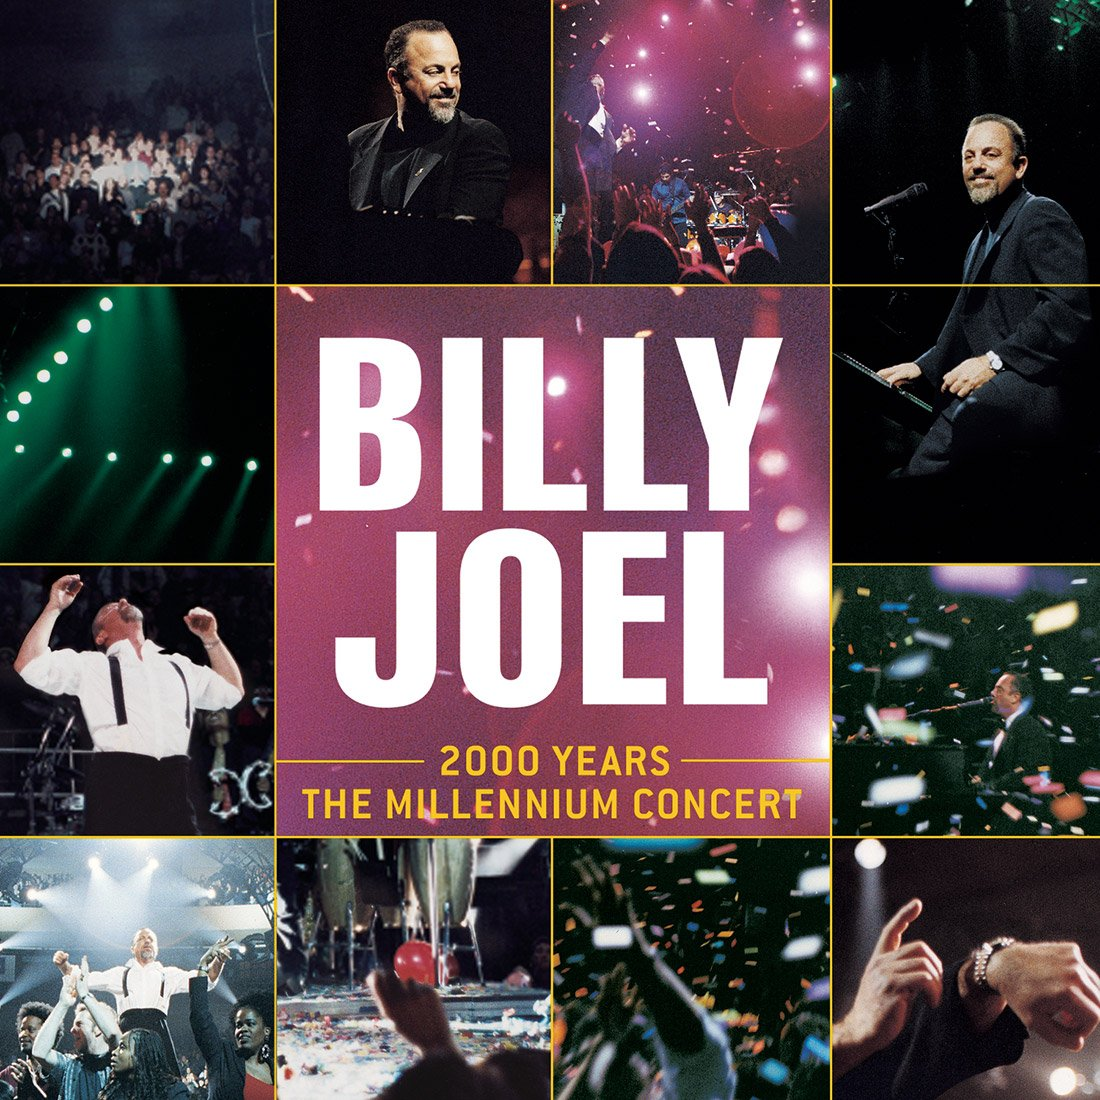 Billy Joel - 2000 Years - The Millennium Concert